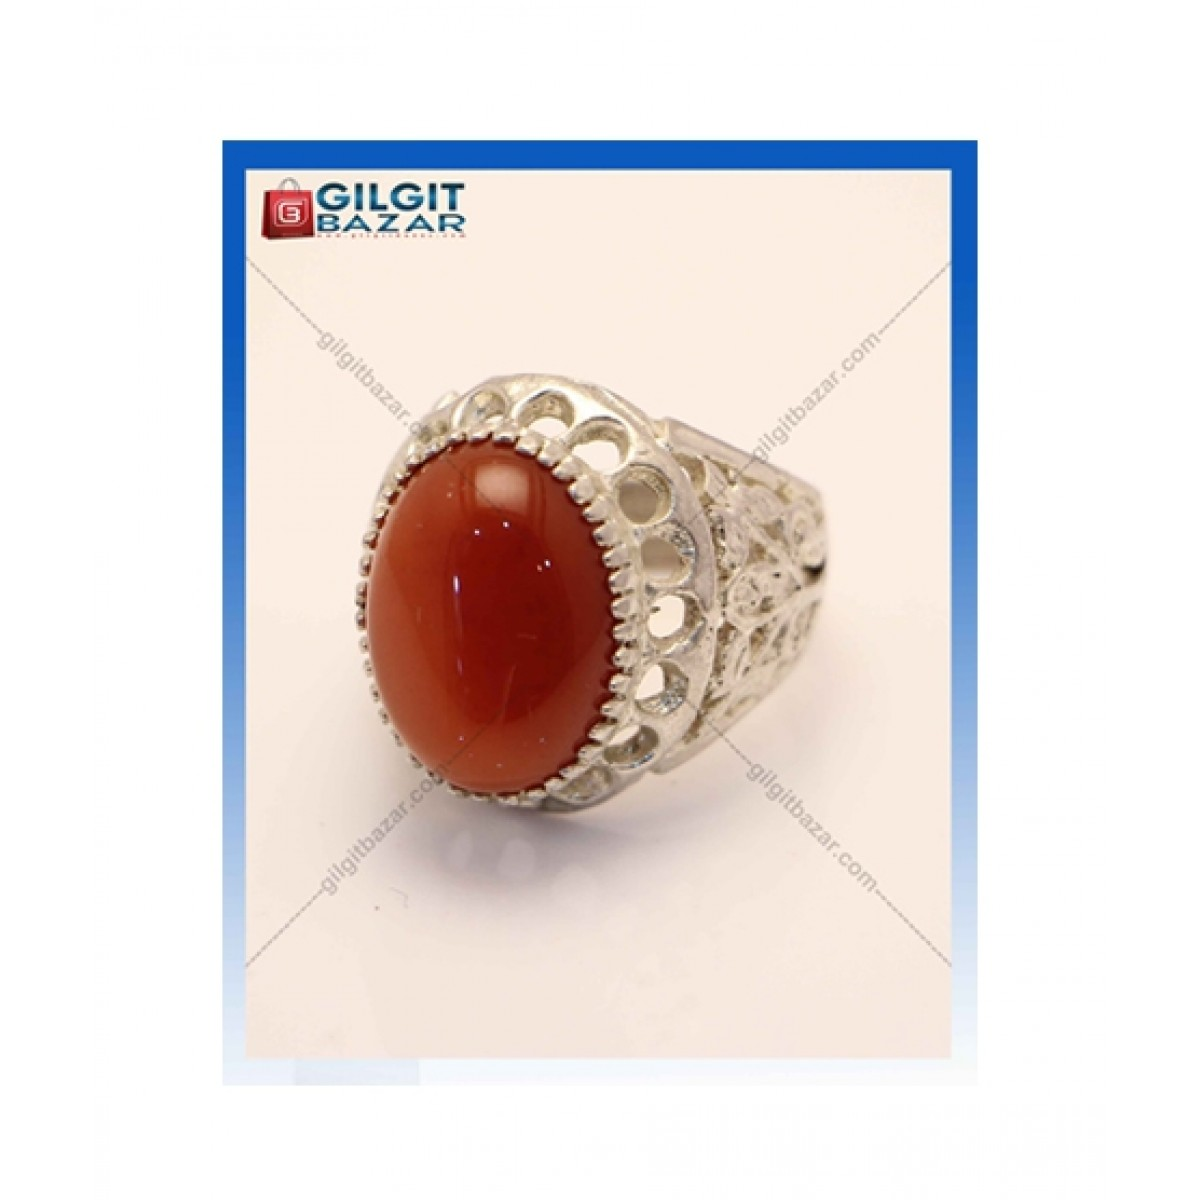 Gilgit Bazar Irani Aqeeq Stone Ring For Men (GB1214)